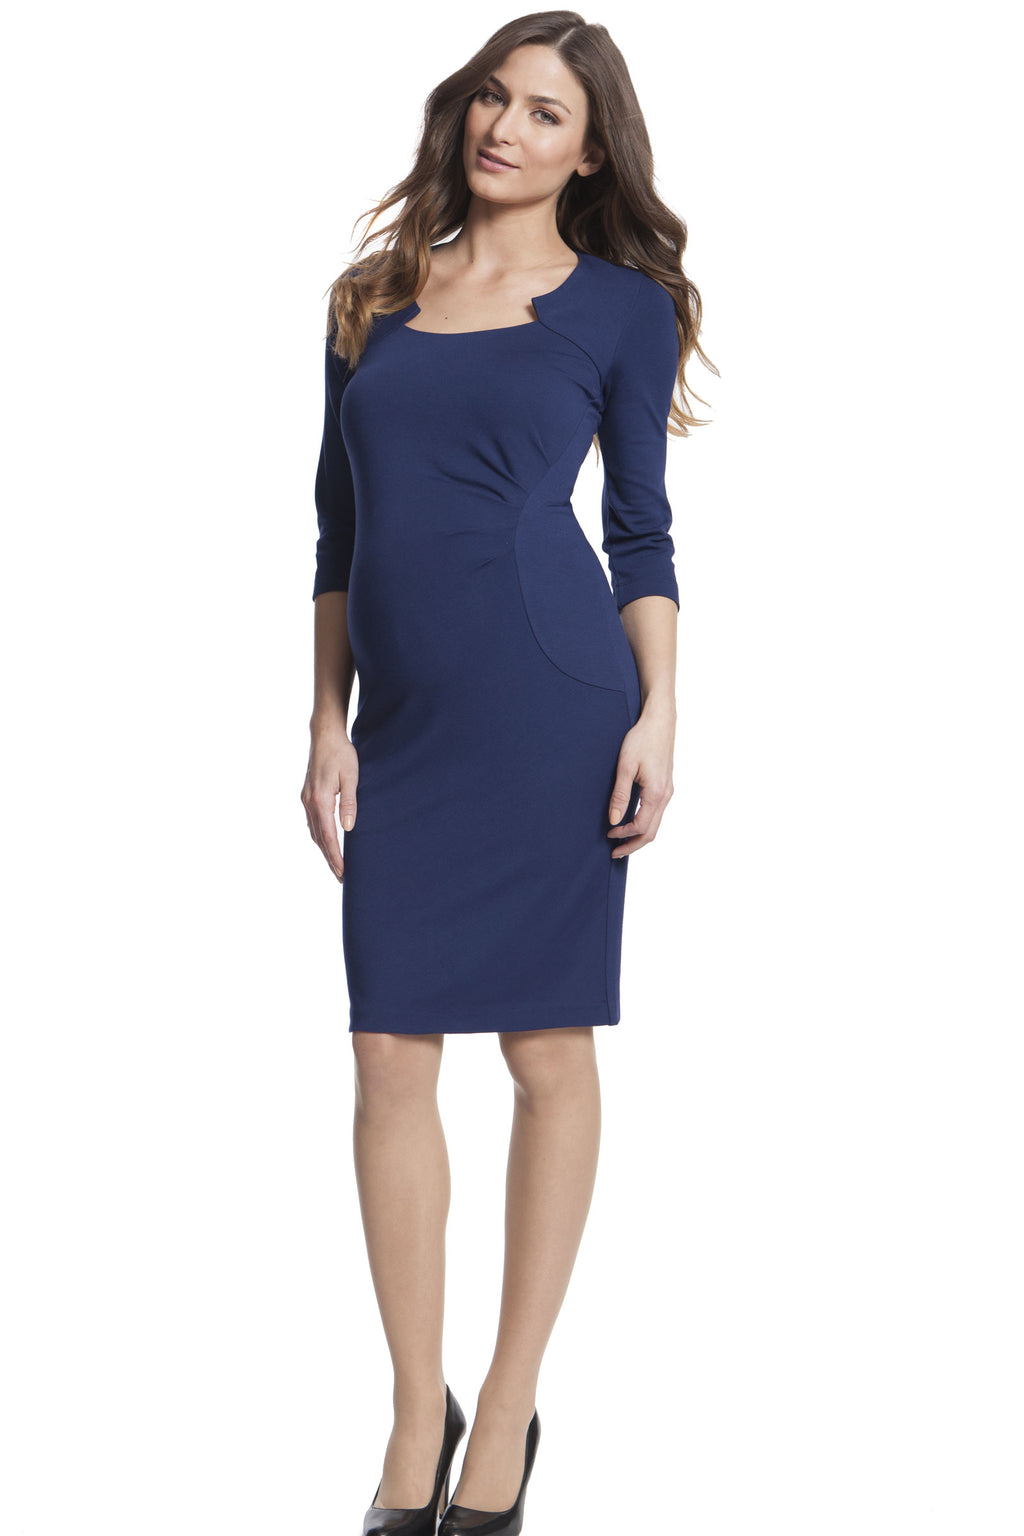 Seraphine Amoret Ponte Dress - Seven Women Maternity